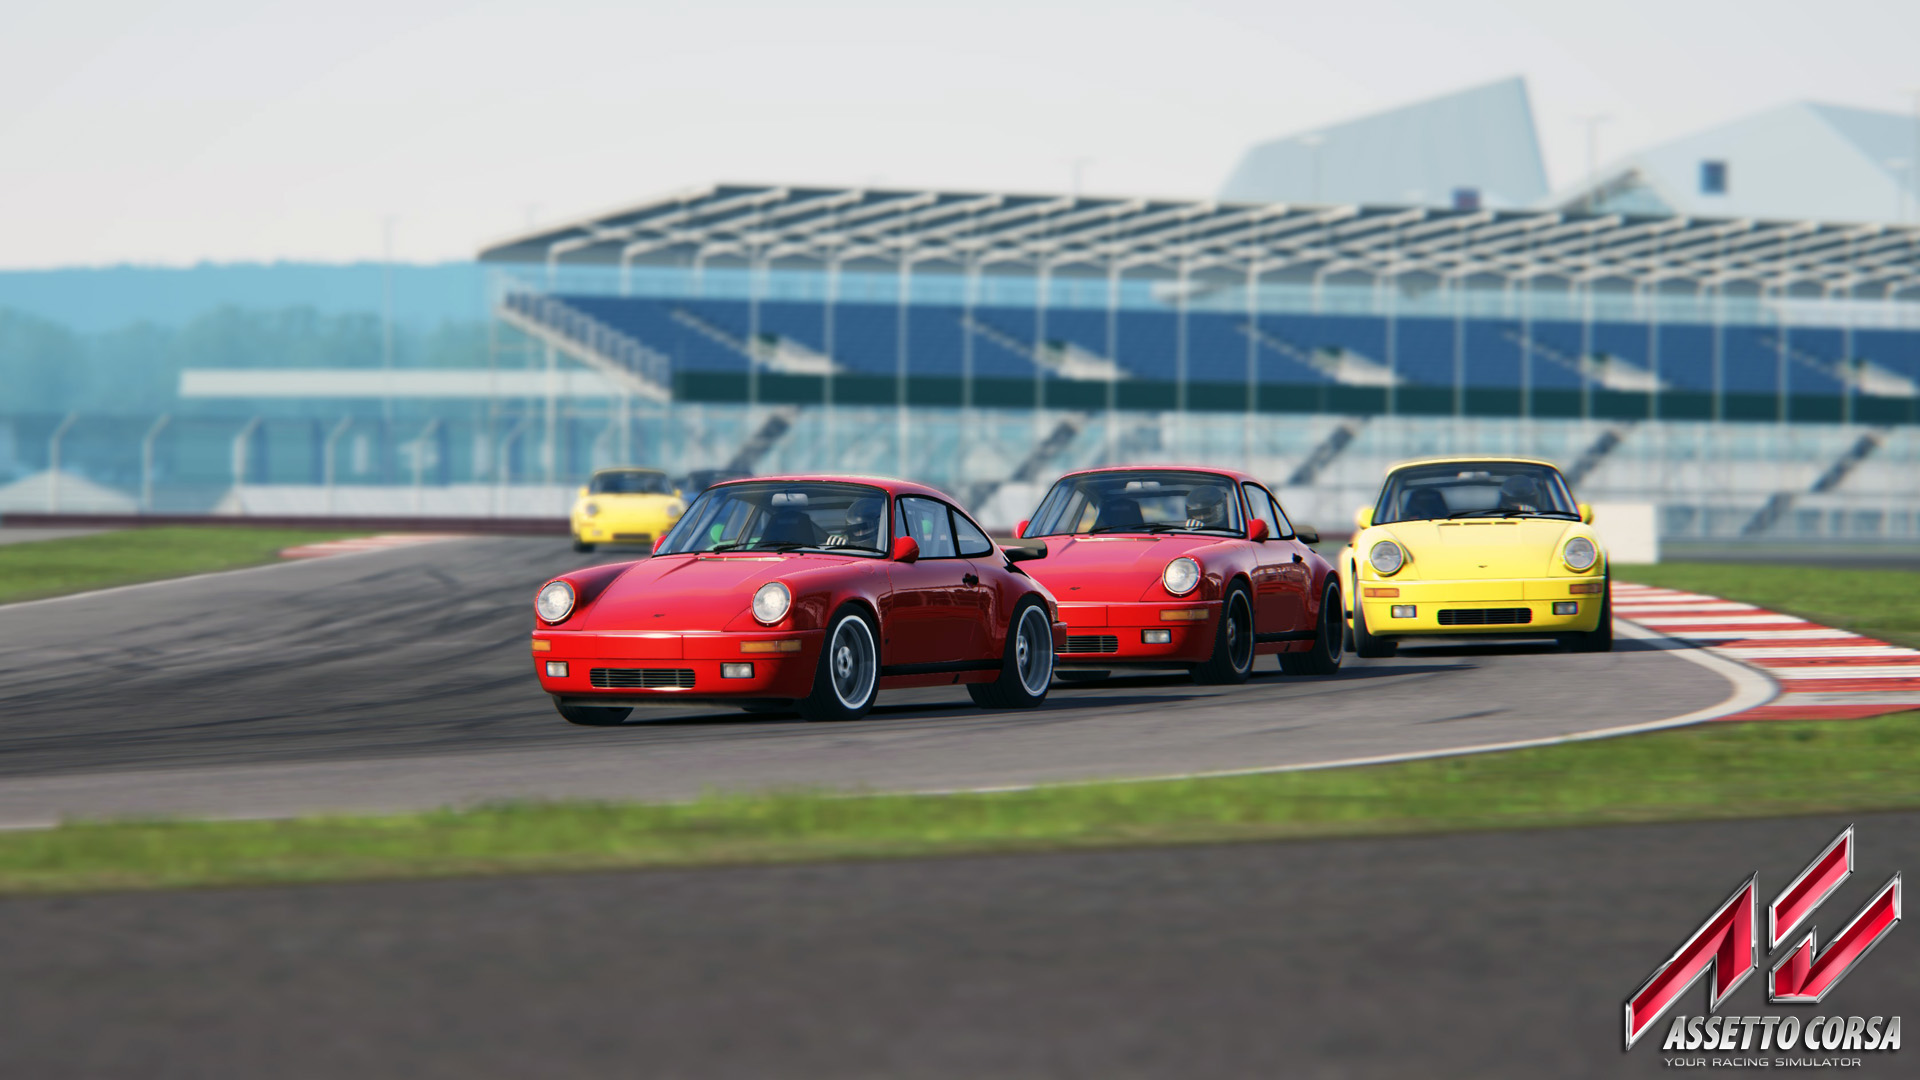 Ks Dev Author At Assetto Corsa Rc Car Circuit Exposed Flickr Photo Sharing